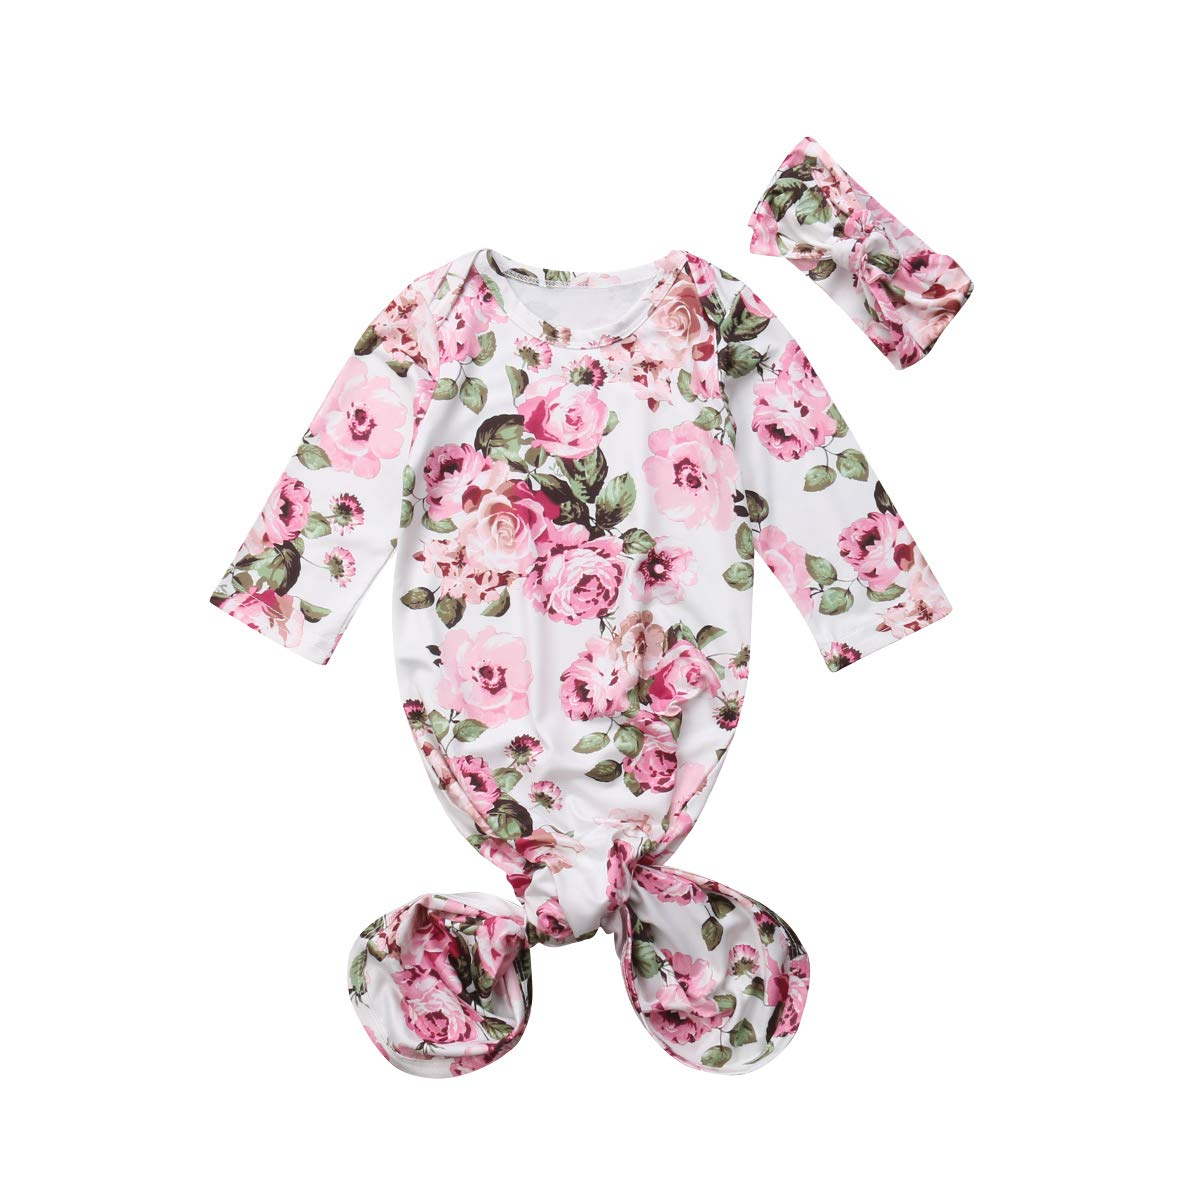 Mubineo Infant Newborn Baby Floral Sleeping Bag Swaddle Blanket with Headband Outfits (White, 0-6 Months)